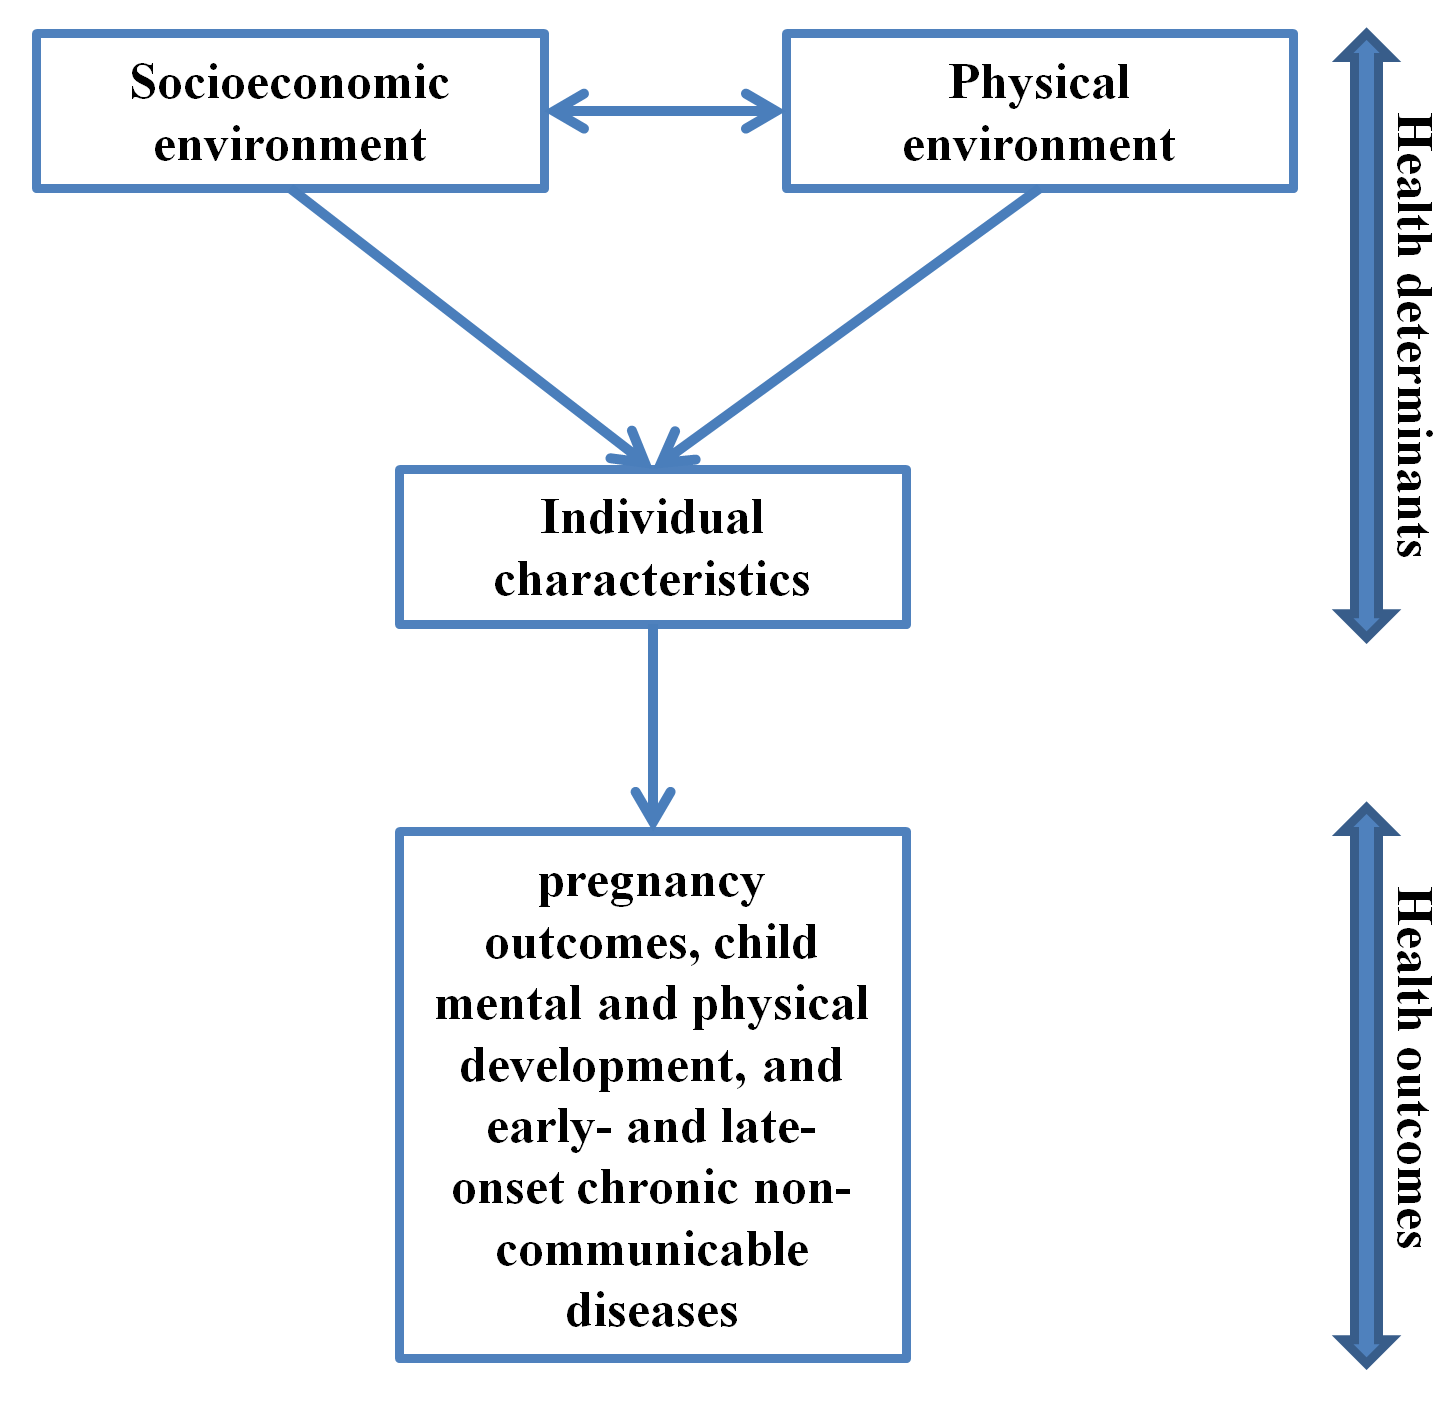 Health determinants and outcomes covered by the project